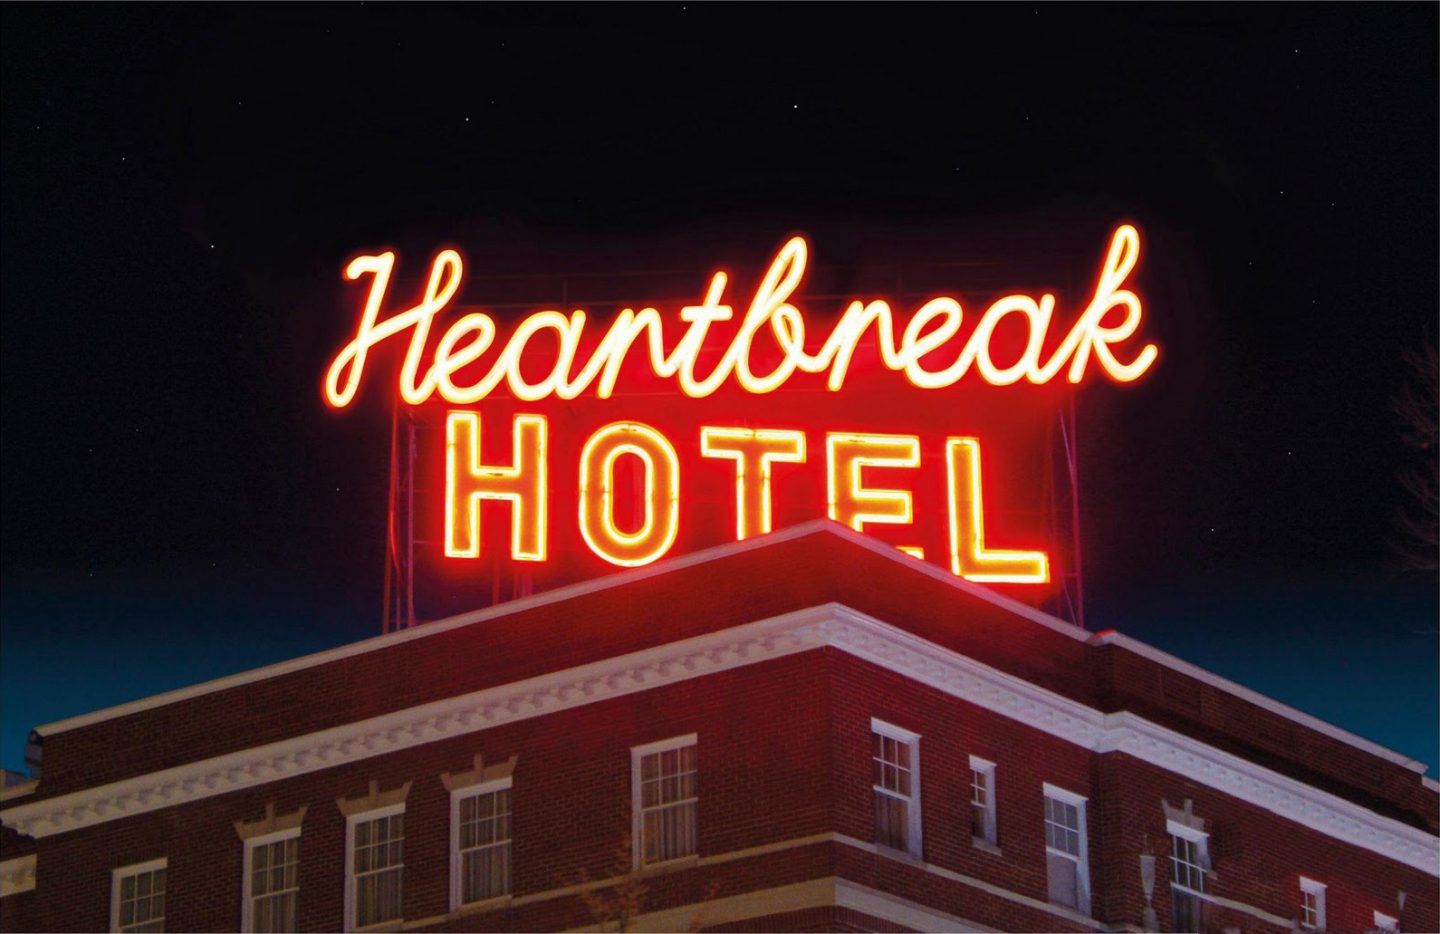 Checking Out of the Heartbreak Hotel